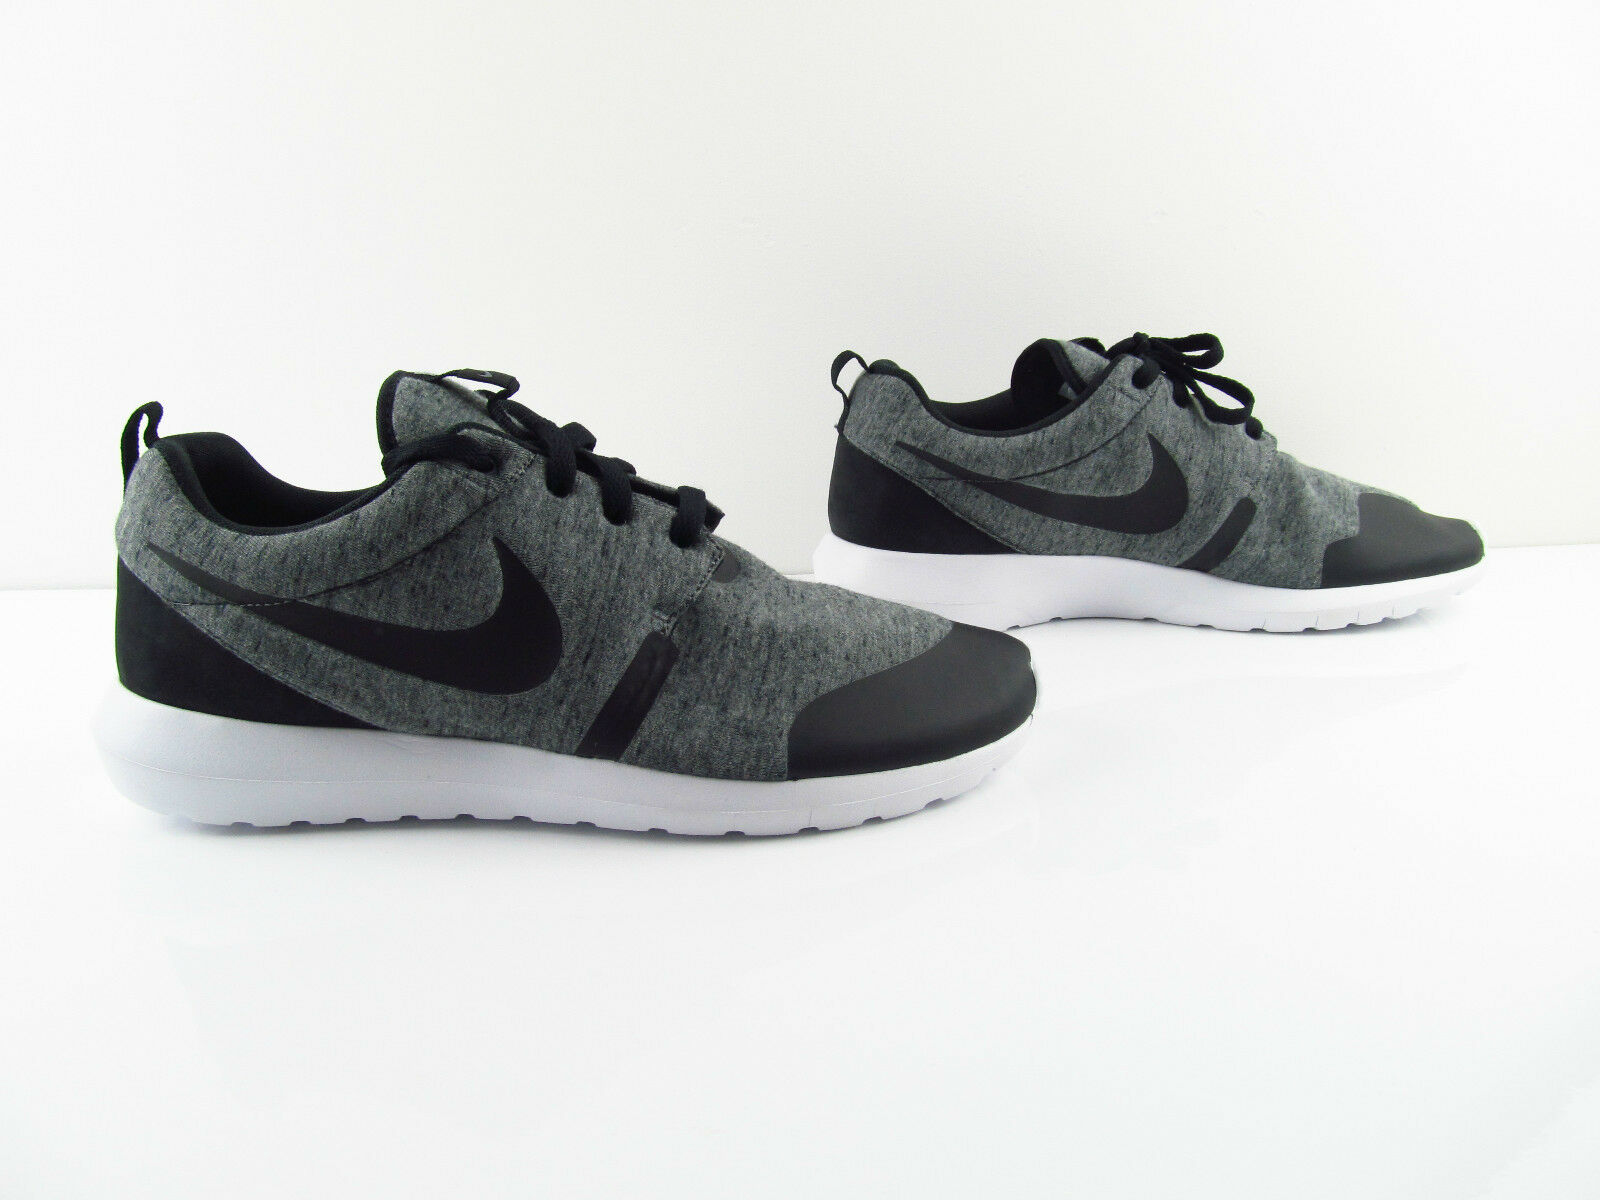 Nike Roshe Rosherun TP Tech Fleece Pack Tumbled Grey White US_9.5 12 Eur 43 46